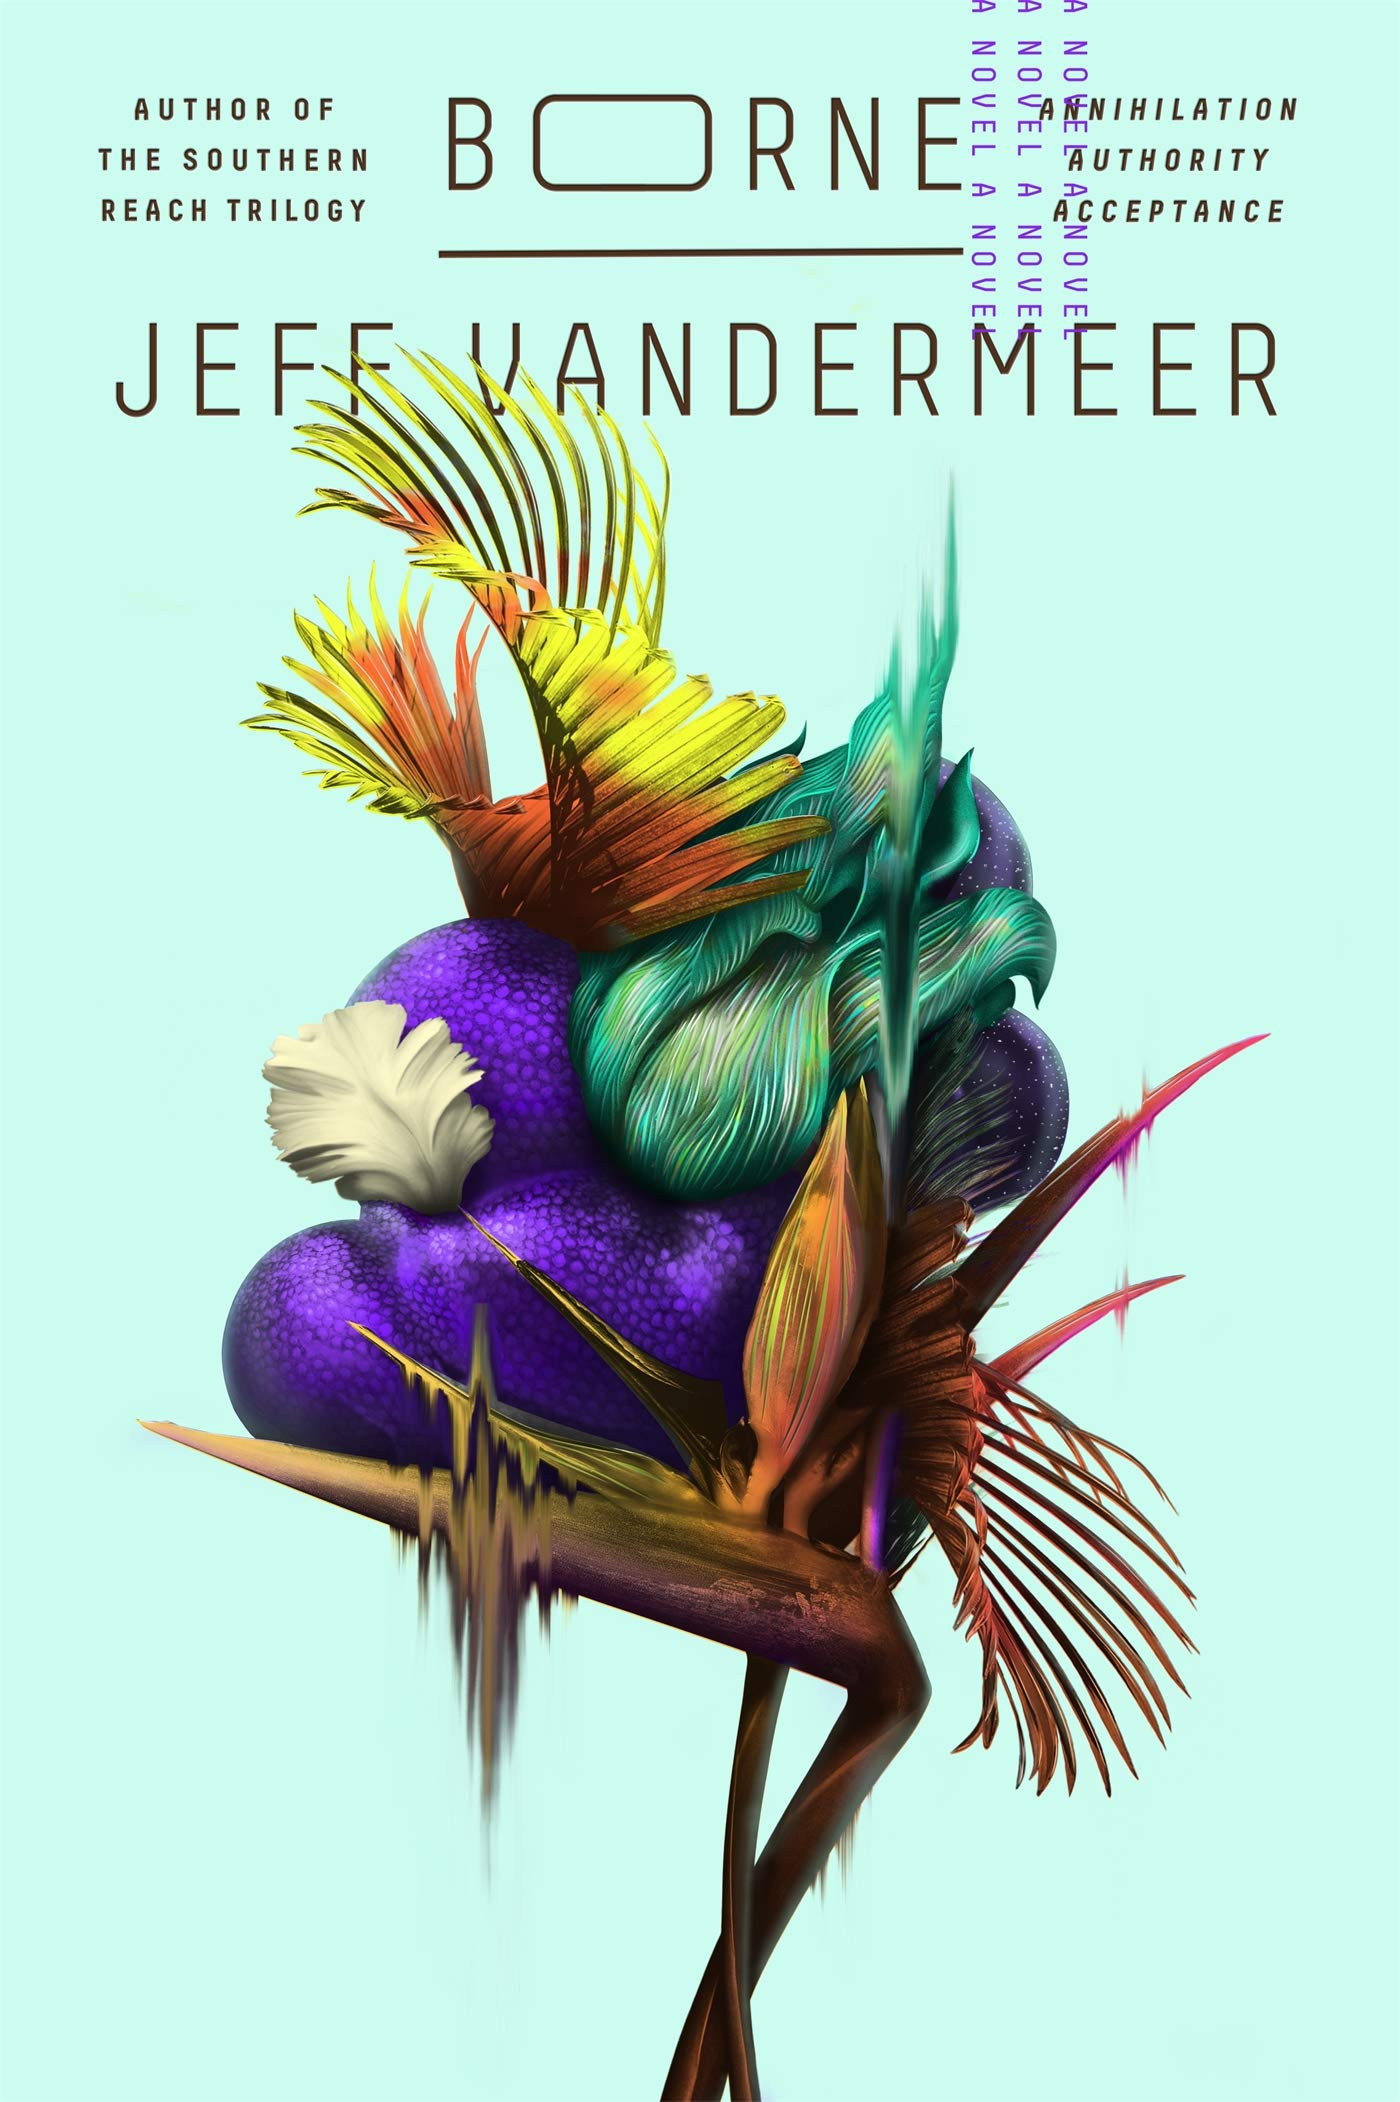 "BSG #8: Borne is Flubber, Rats are Forever / Borne - What is Borne? Human? Weapon? Flubber?! The Squad discusses Jeff Vandermeer's Borne. Join us for the great sci-fi vs. fantasy debate and hear what we think about ""The New Weird."" While this book is no Southern Reach Trilogy, there's still lots of cool stuff going on, including one very questionable twist that shocked Mary in real time. Plus, what's up next on the blog and the podcast. Rate, review, and enter our next giveaway! Rules at booksquad.ink/thegirlsgiveaway.Check out this month's featured book store, Avid Bookshop!"